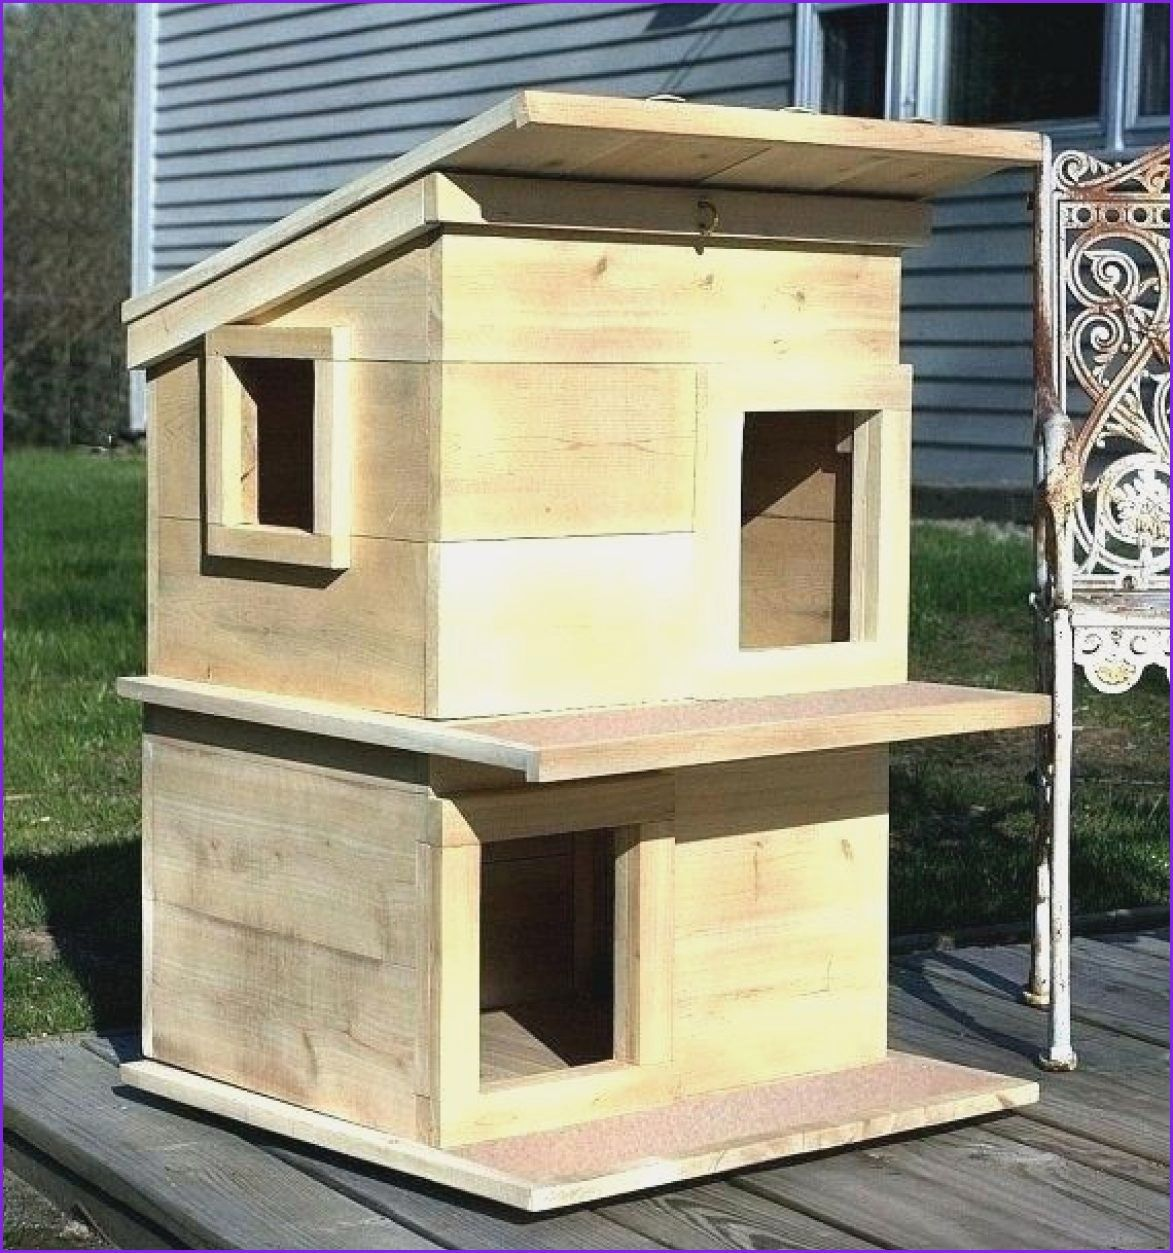 Awesome Cat House Plans Diy Cat House Plans Diy . Awesome